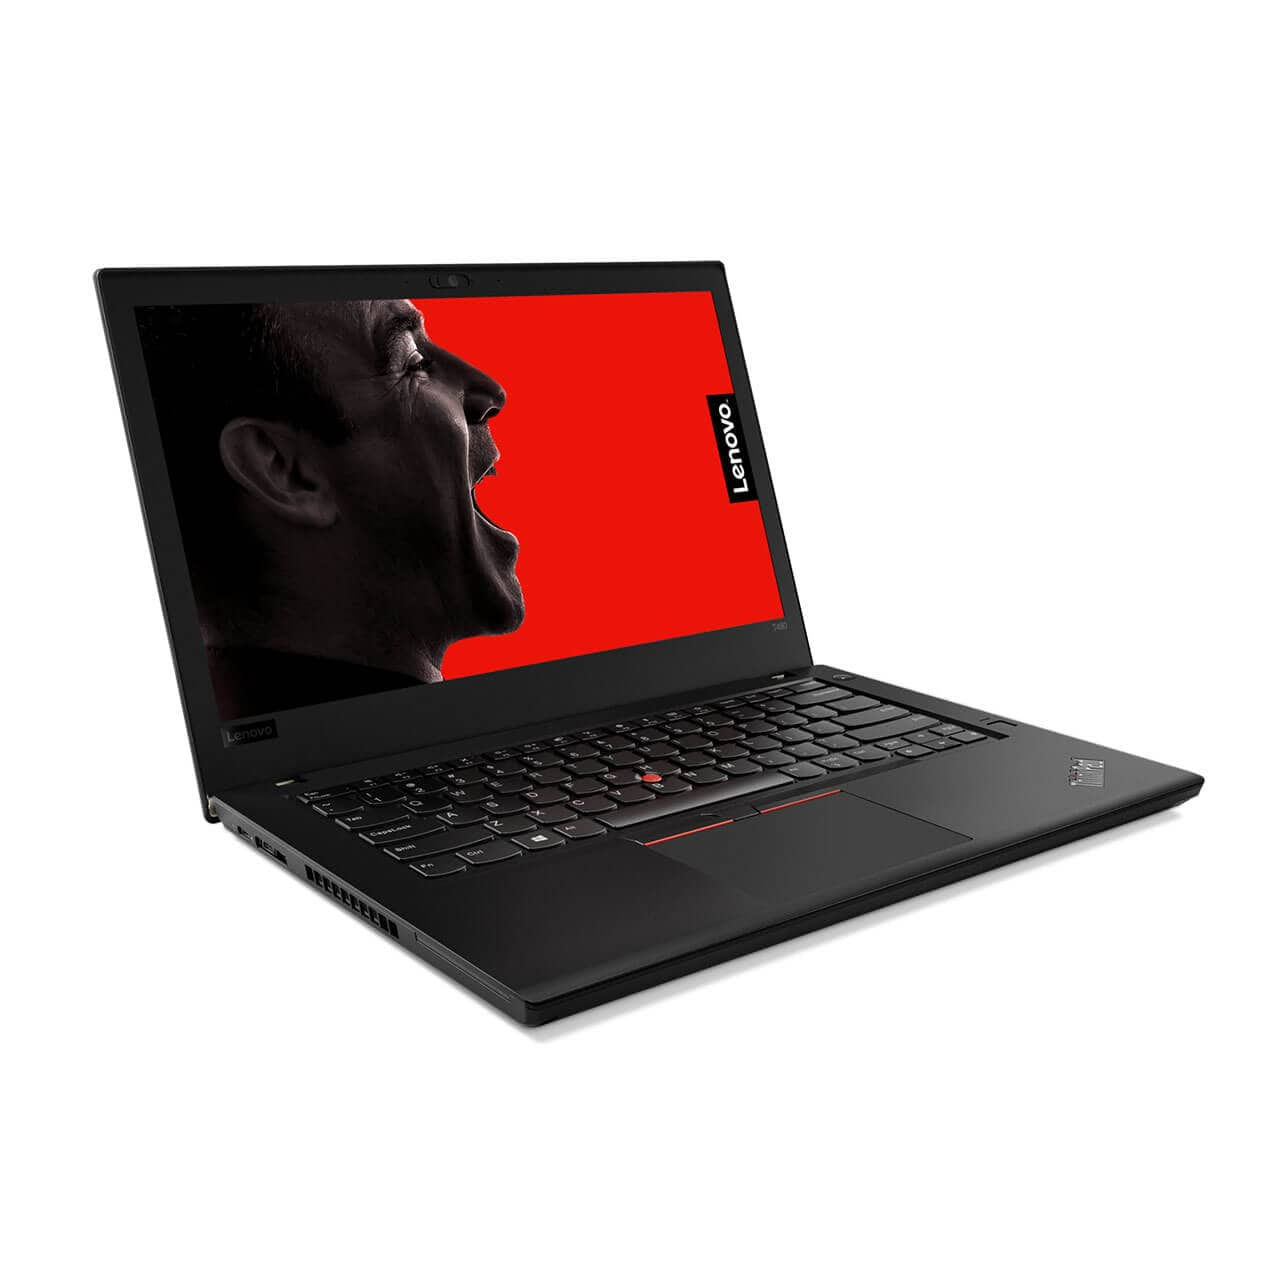 "Lenovo ThinkPad T480, 14.0"", i7-8650U, 16 GB RAM, 1TB SSD, Win 10 Pro 64 2"